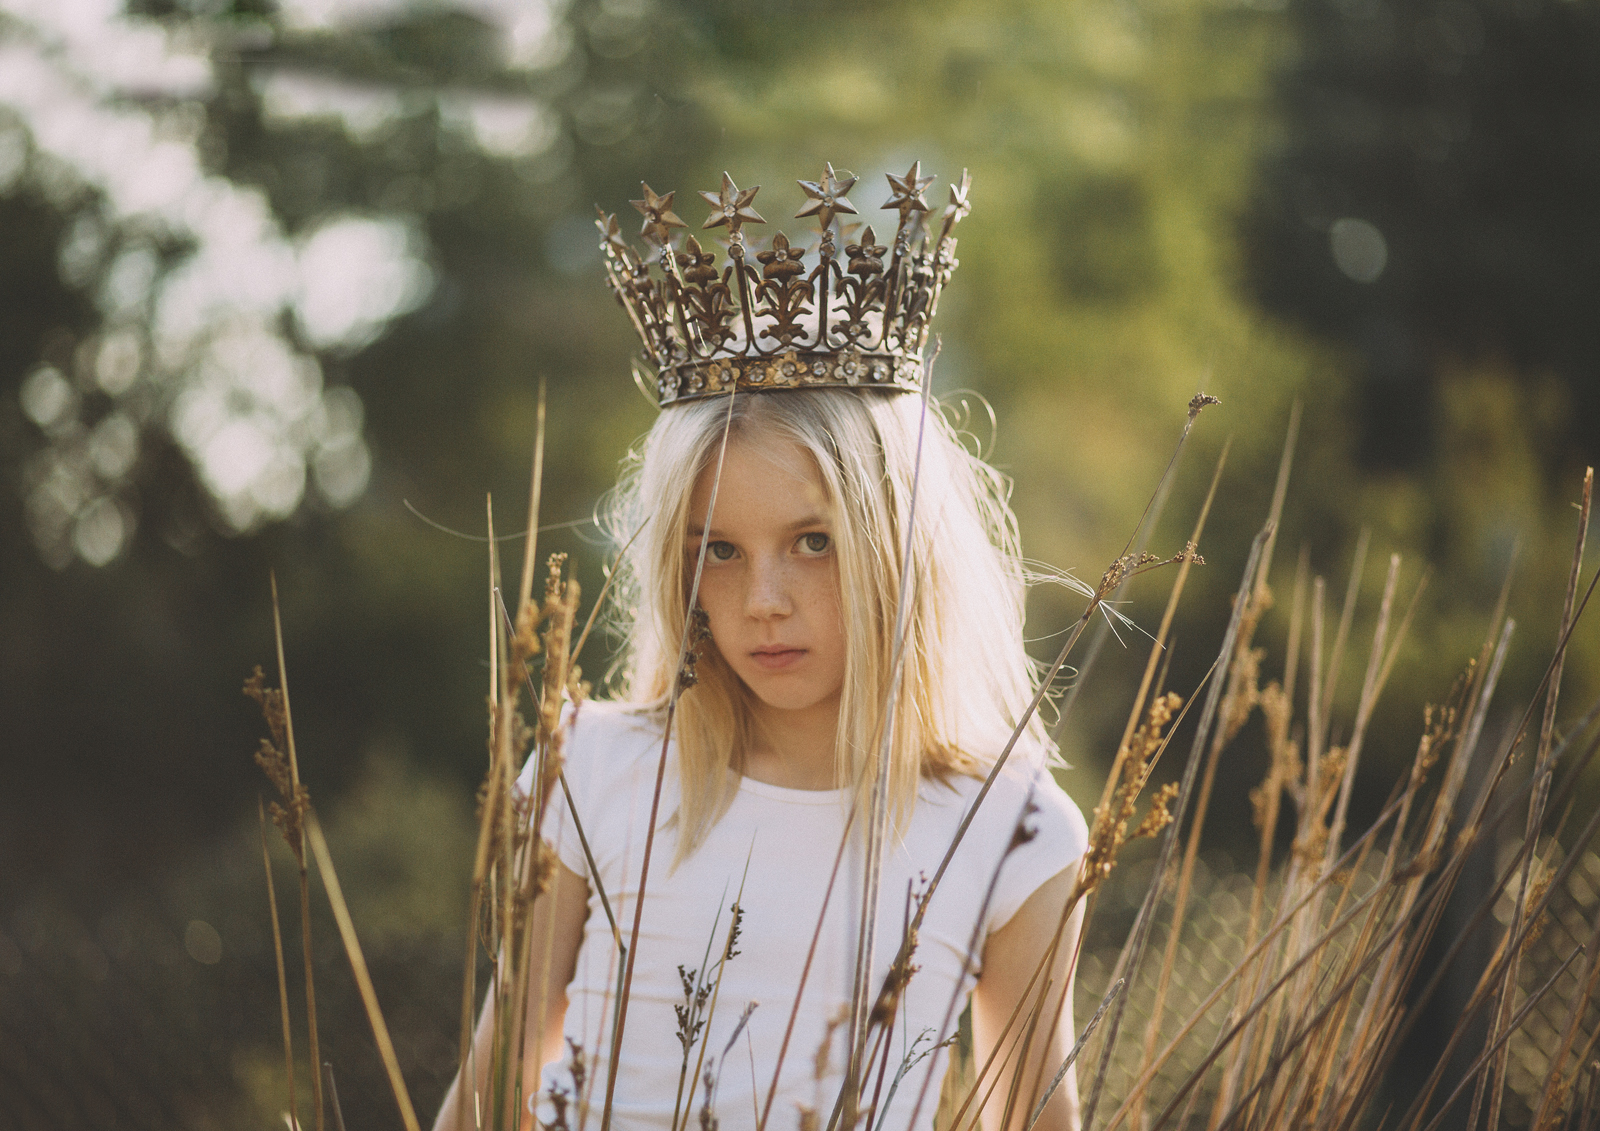 Little girl wearing gold crown!